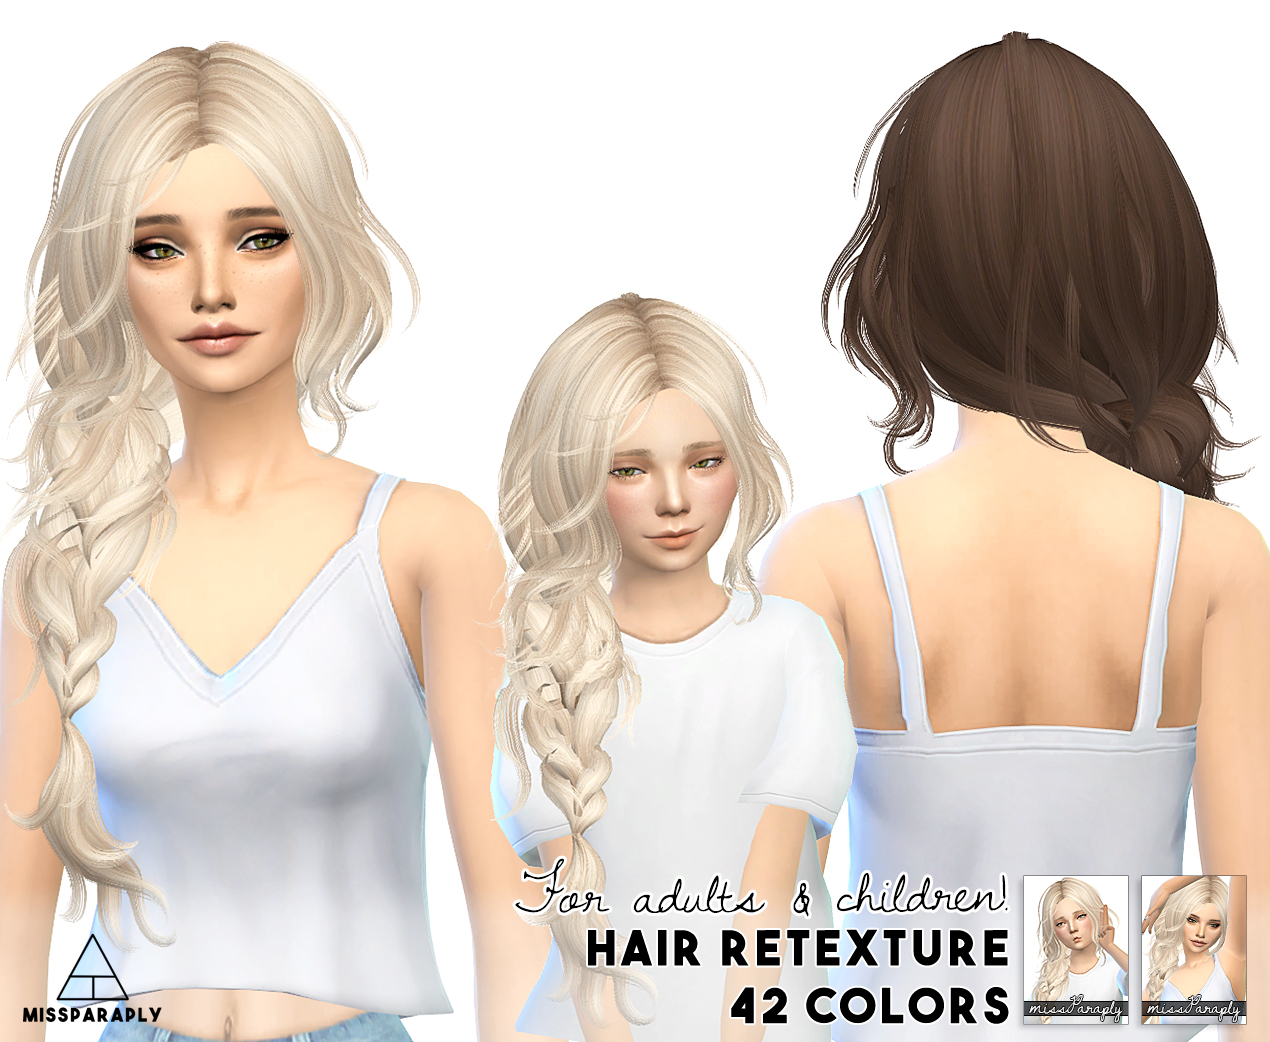 Sims 4 Hairs Miss Paraply Maysims 43 Hairstyle Retextured